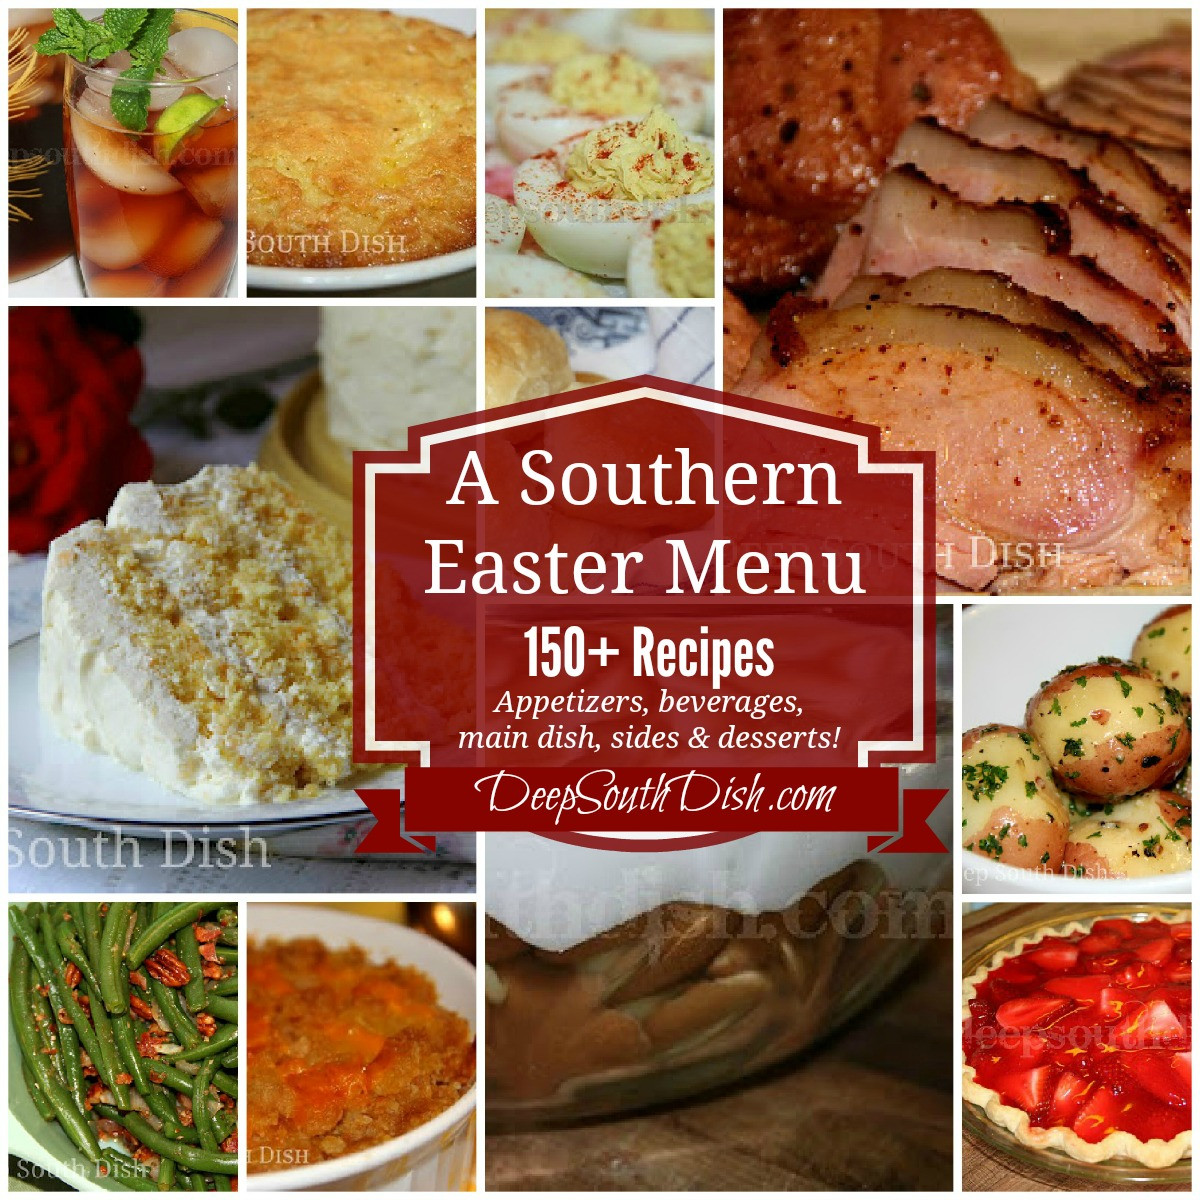 Easter Sunday Dinner Ideas  Deep South Dish Southern Easter Menu Ideas and Recipes